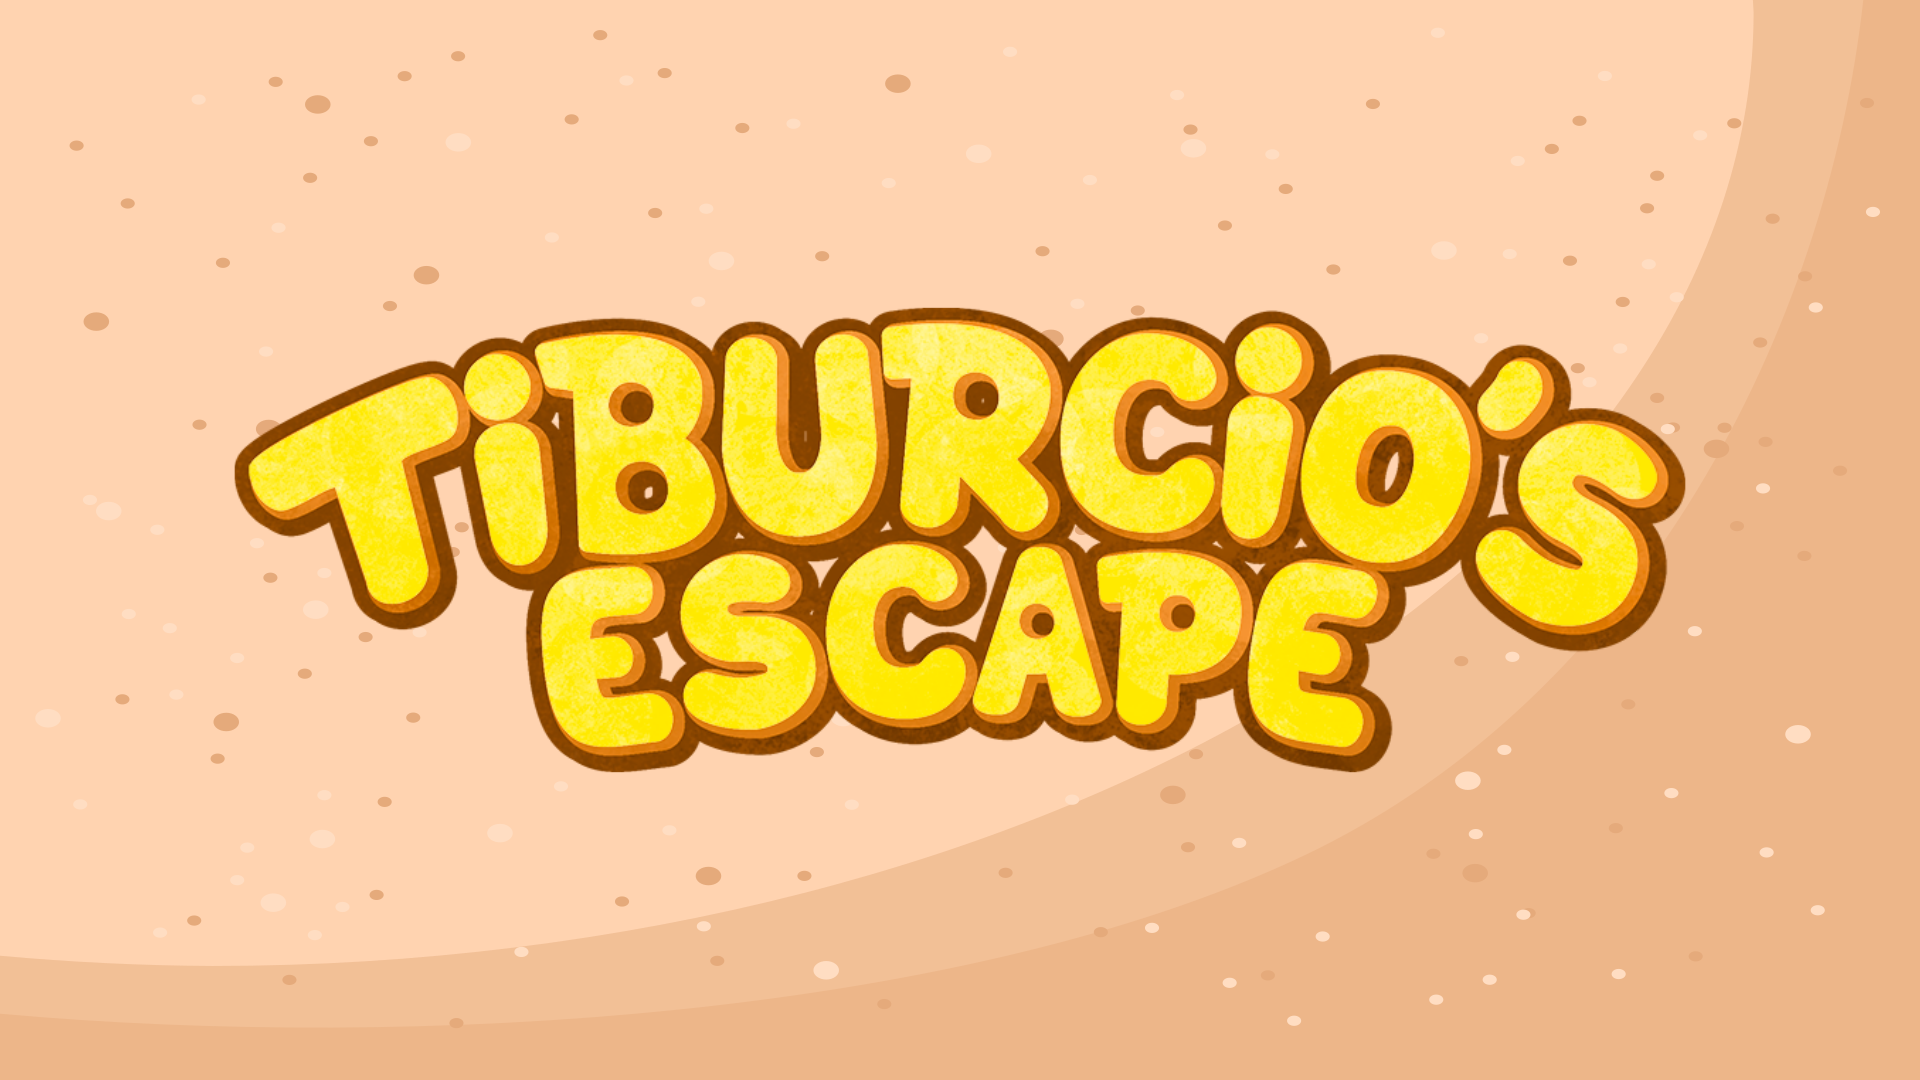 Tiburcio's Escape User Interface